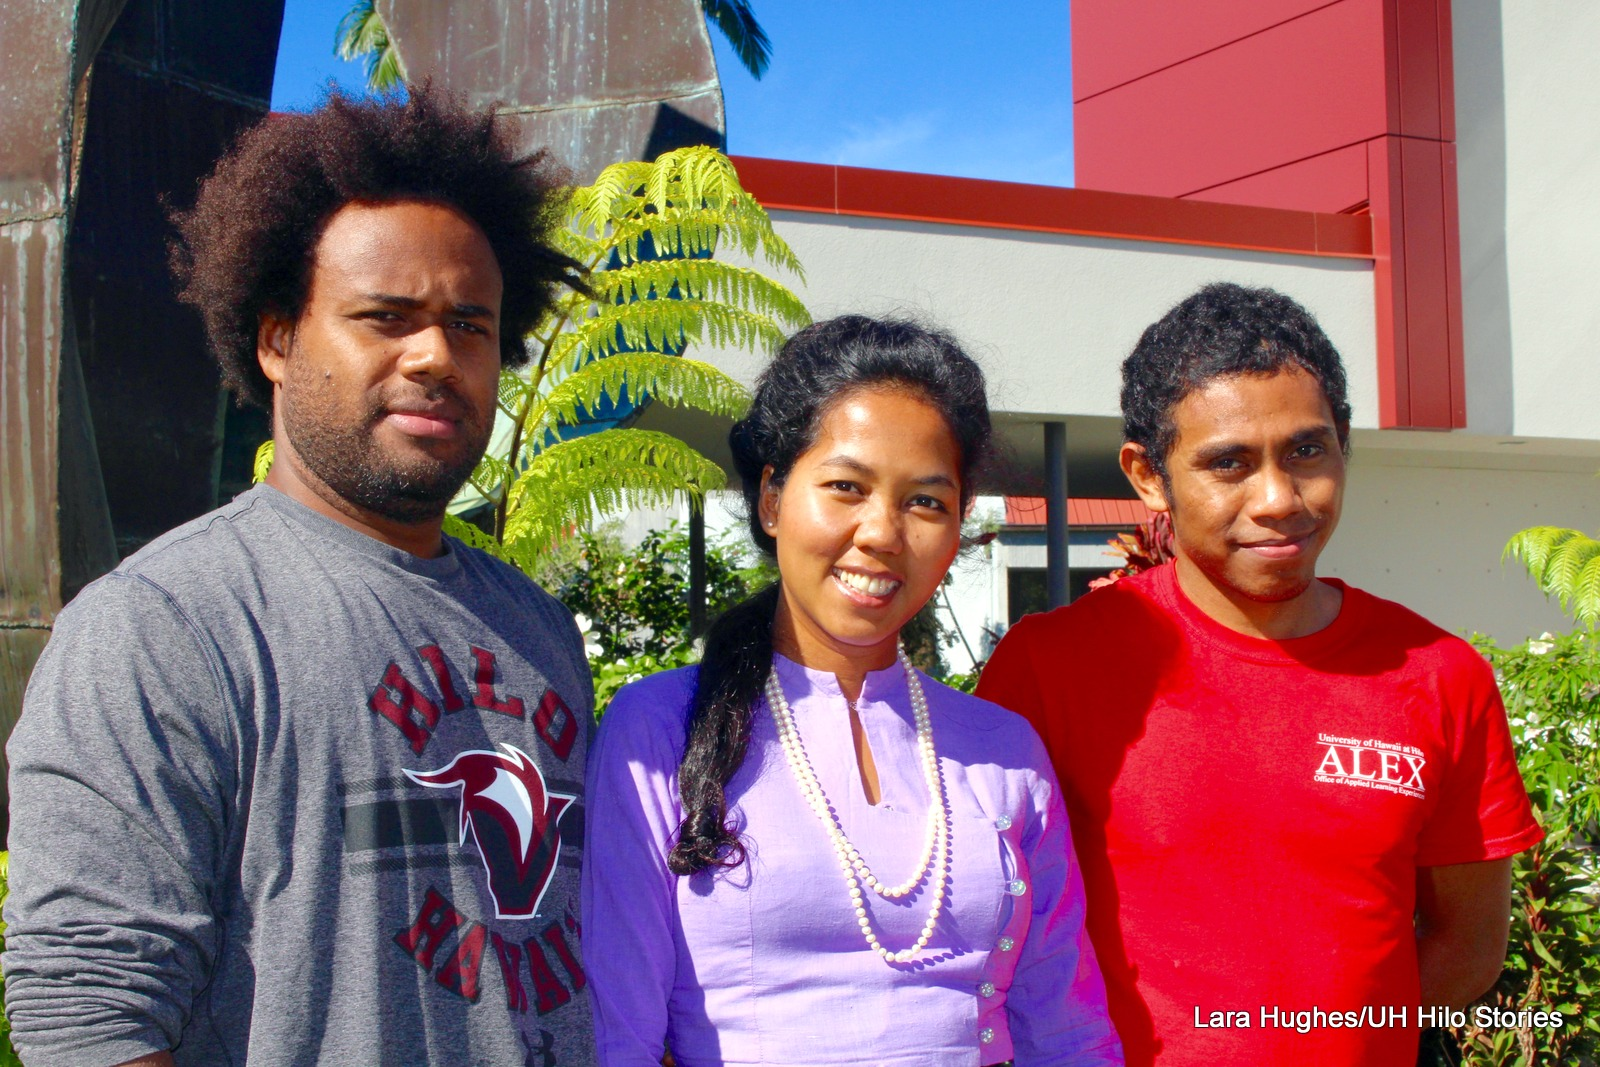 Student speakers at the UH Hilo International Film Festival (l-r)Peter Ramofolo in gray long sleeve shirt, Nandar Mya Yee in purple, and Helio Miguel Arcanjo Oliveira de Araujo. in red. The photo is taken outside with ferns and red building in the background.